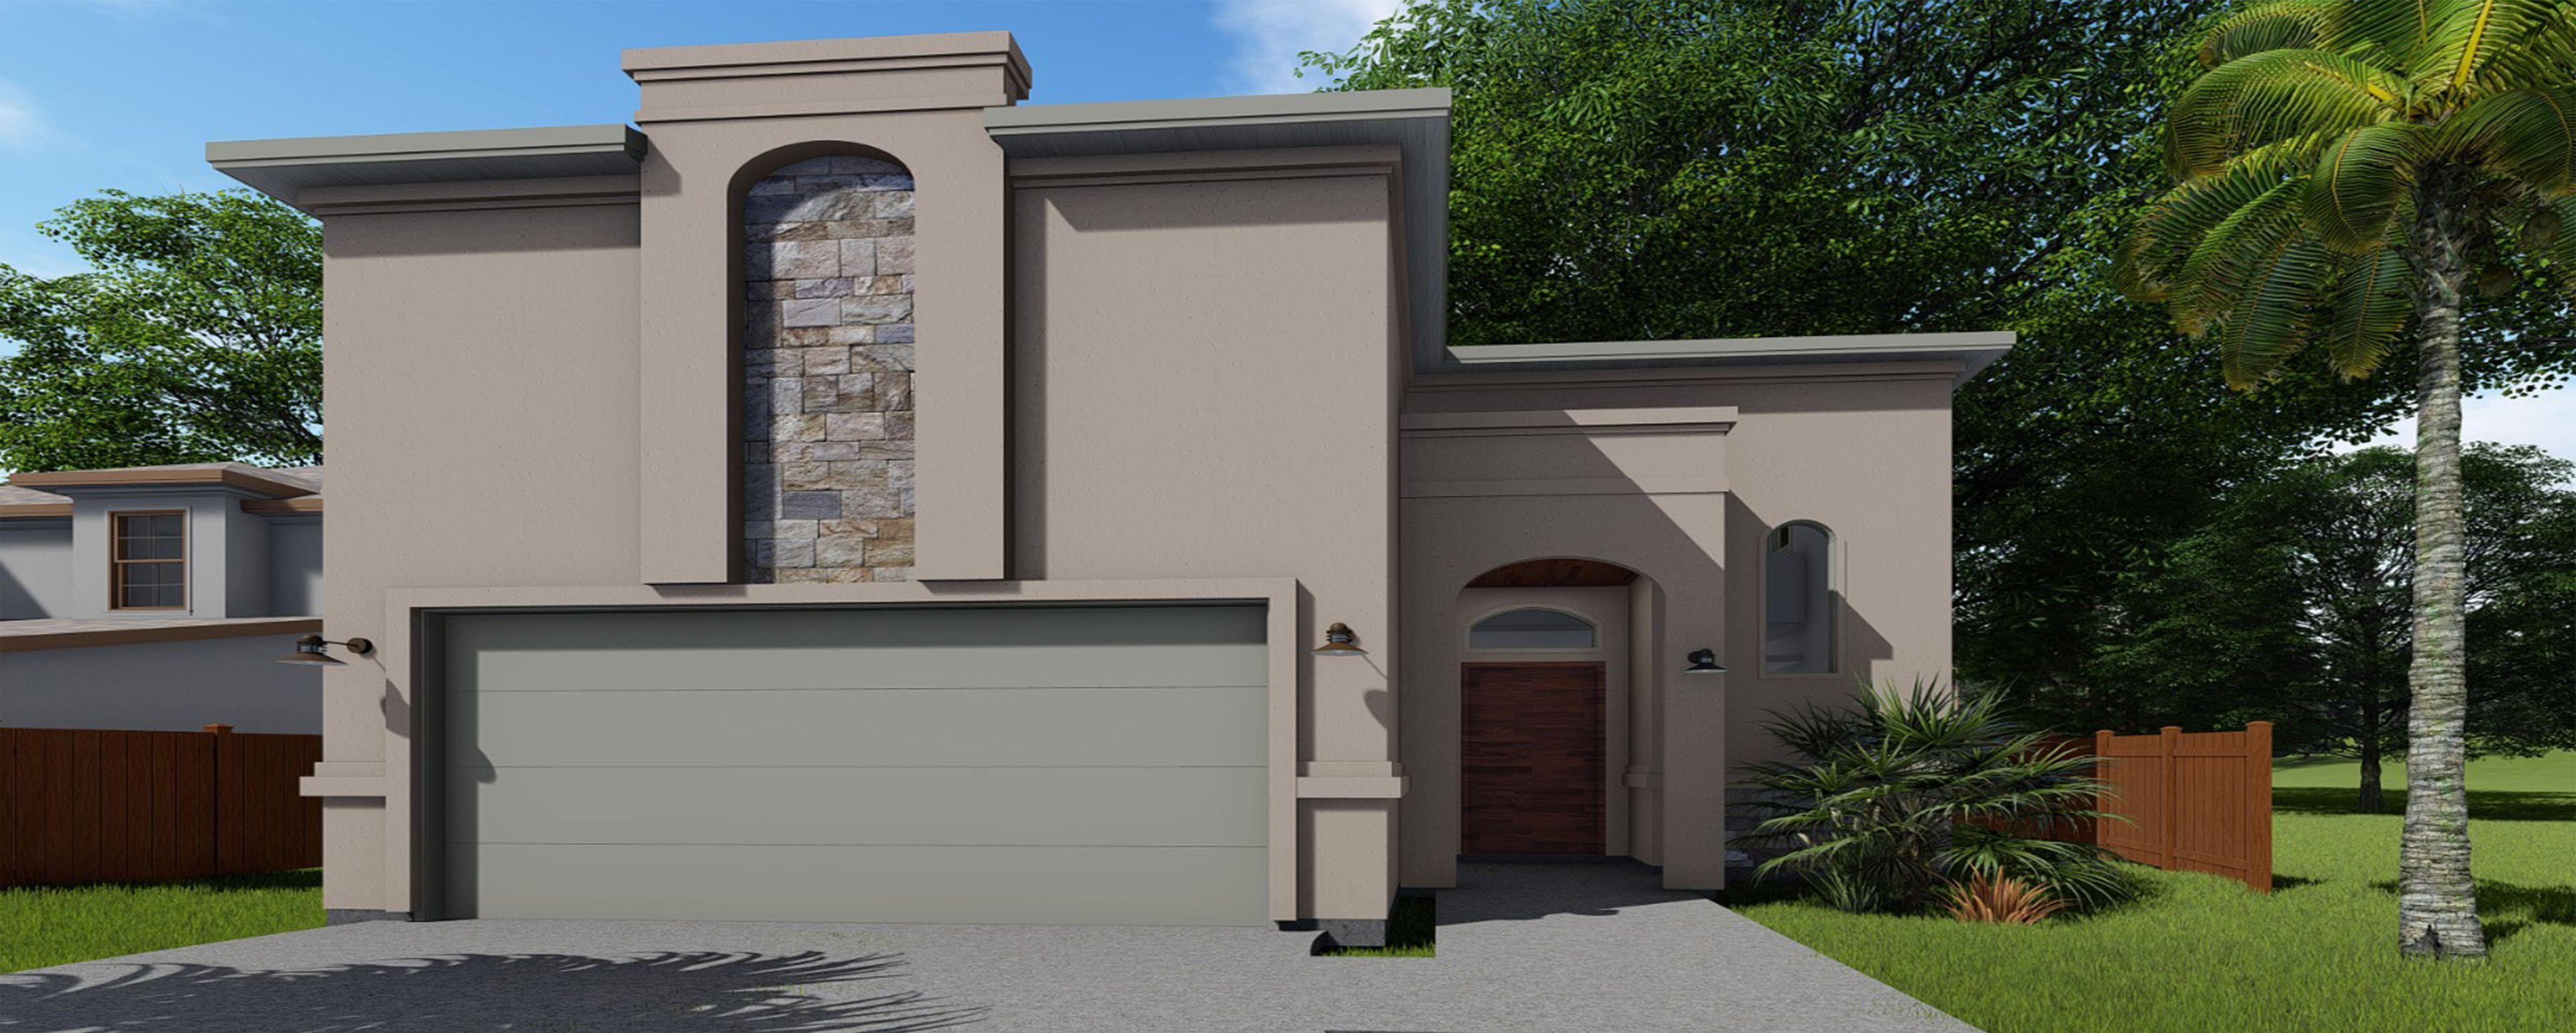 Exterior featured in the 1405 Orto Dr. By KRK Homes in Laredo, TX